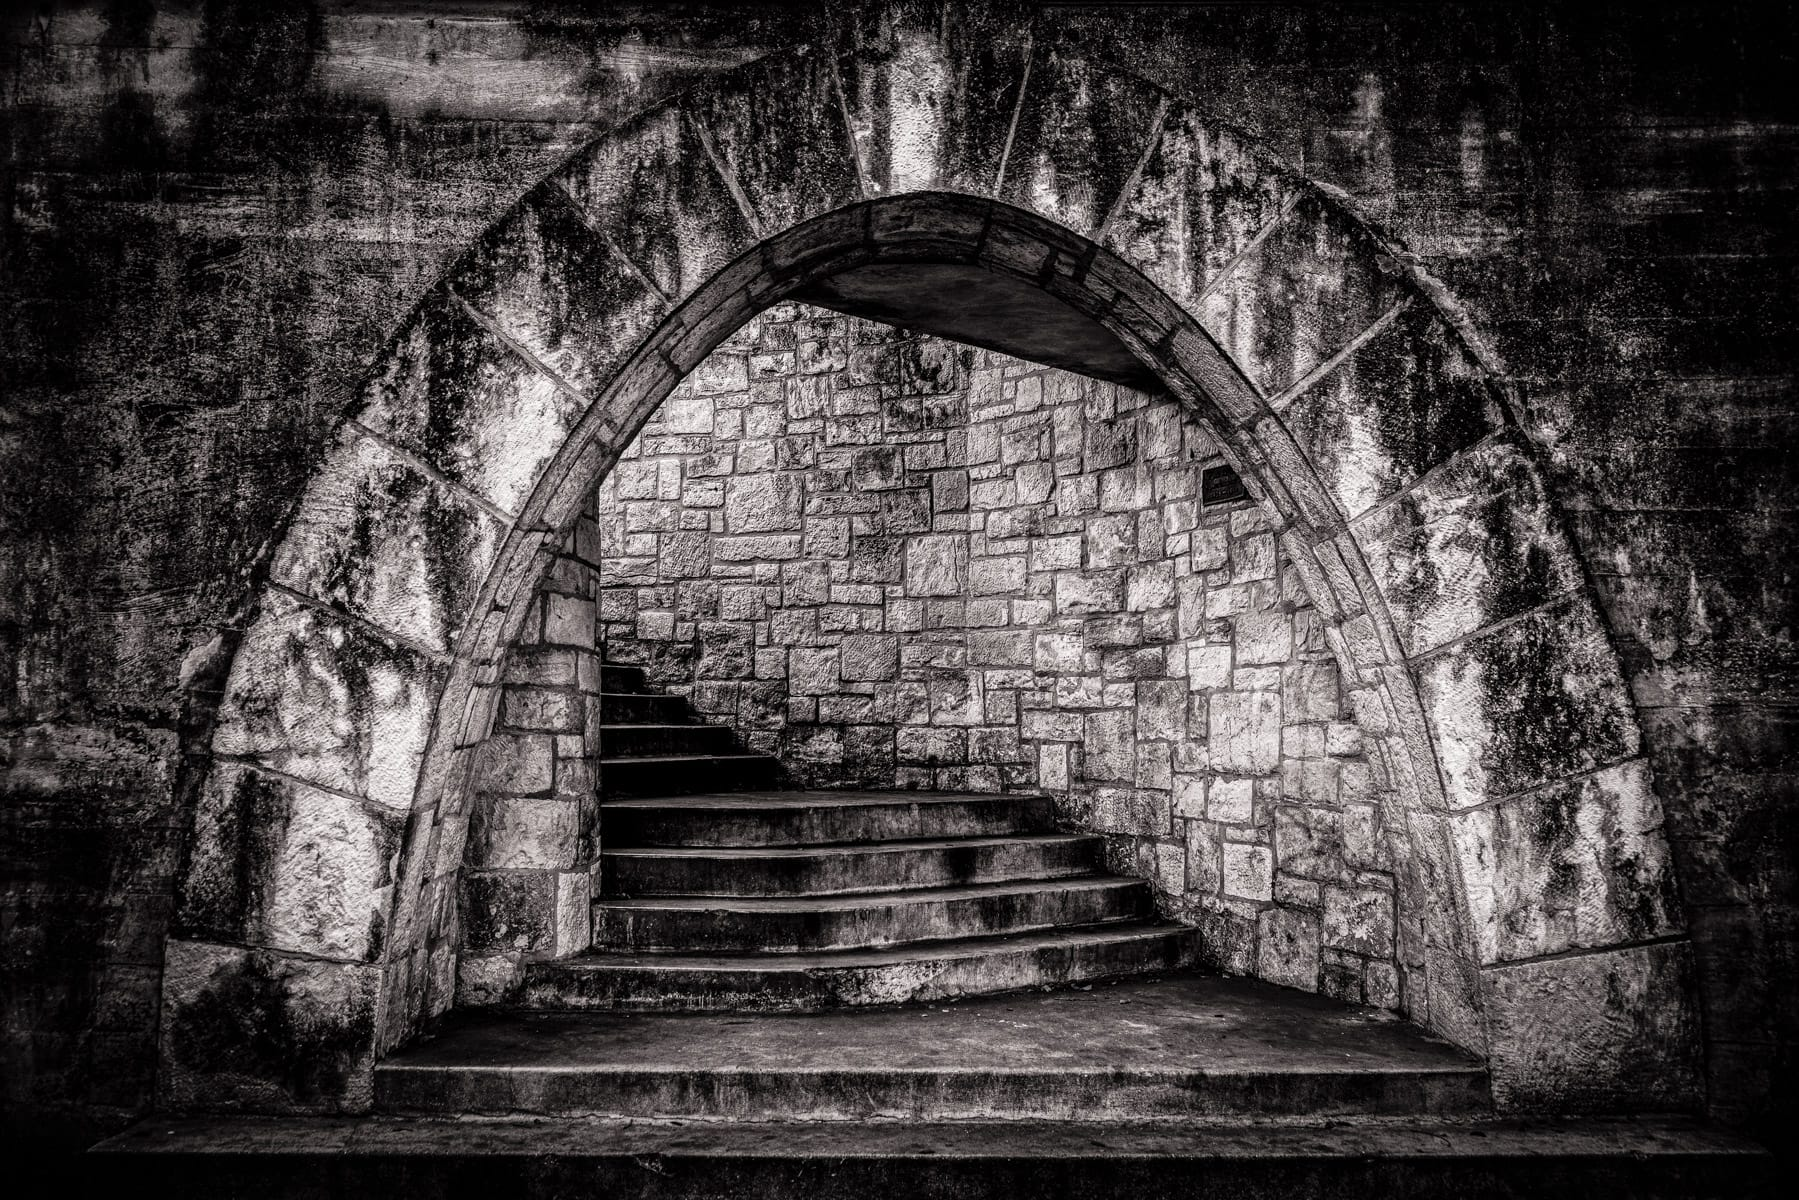 A stairwell is framed by a stone arch along the historic San Antonio Riverwalk, Texas.